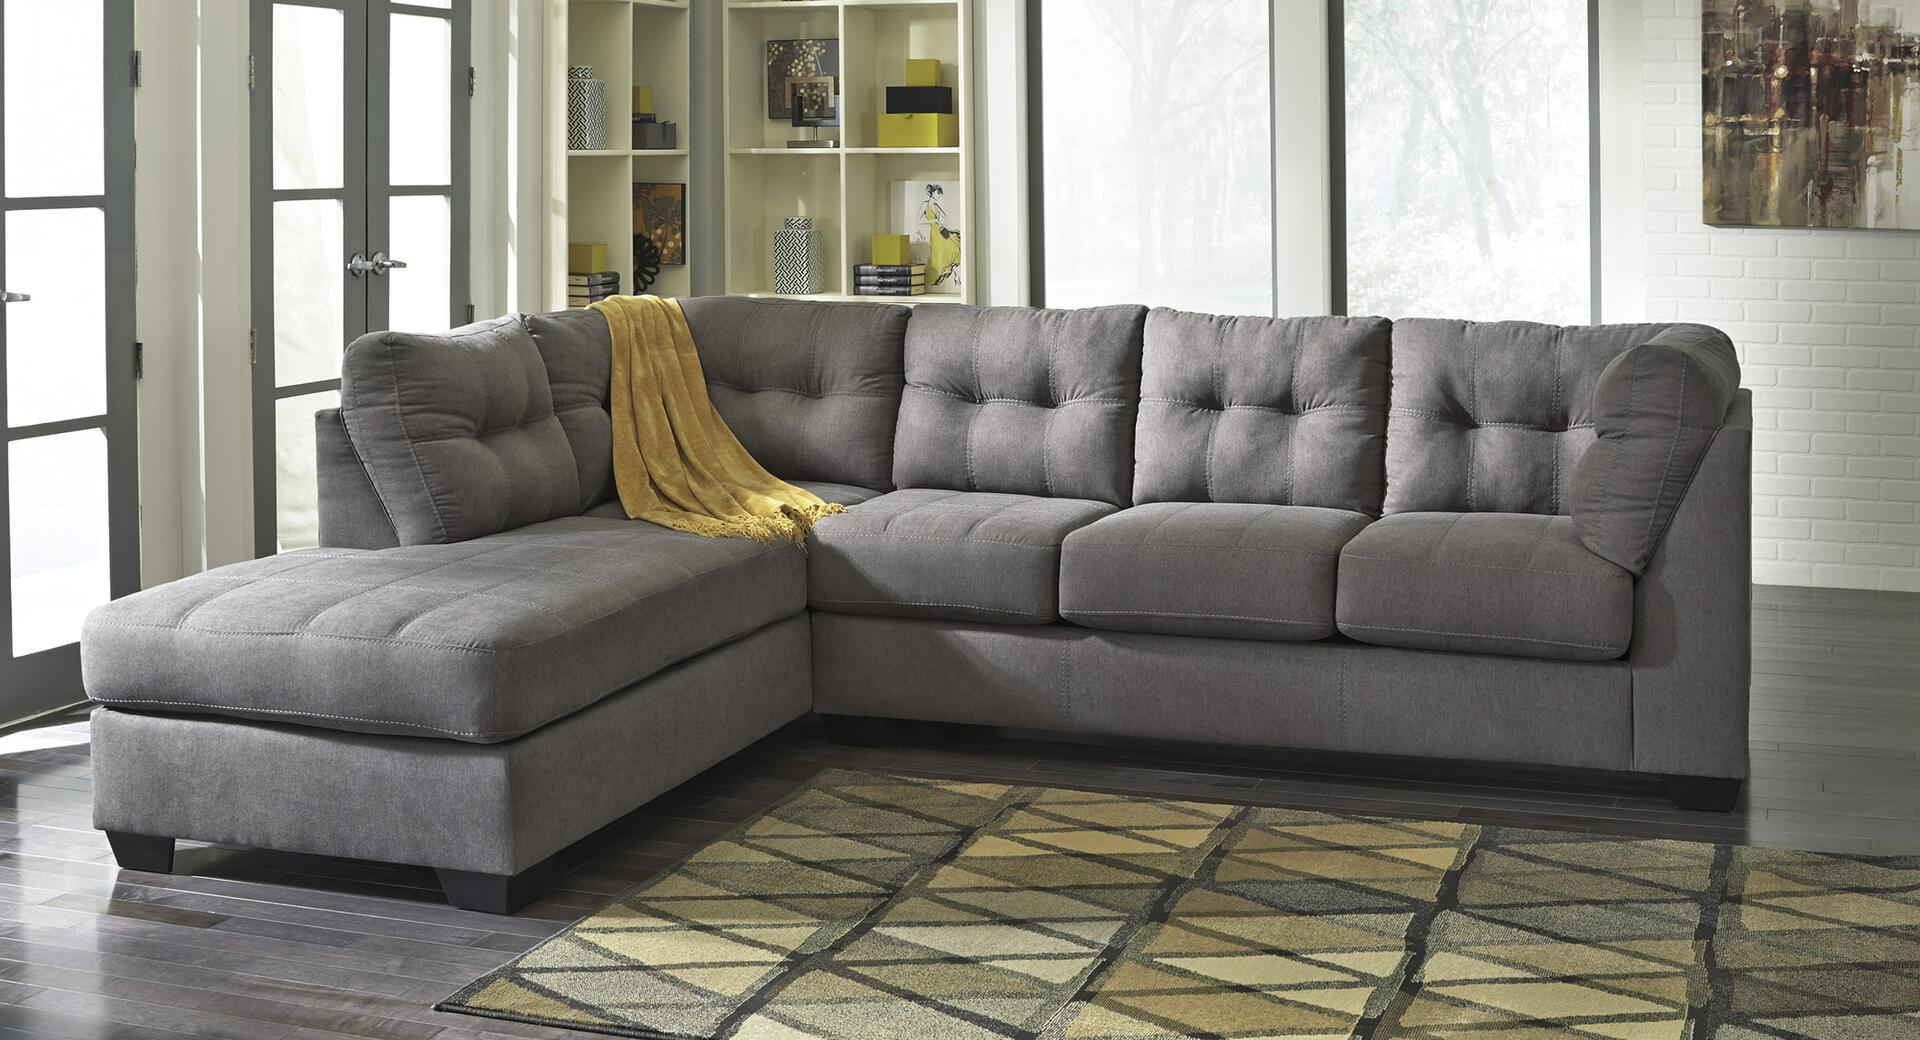 Benchcraft Maier Series Stationary Fabric Sofa